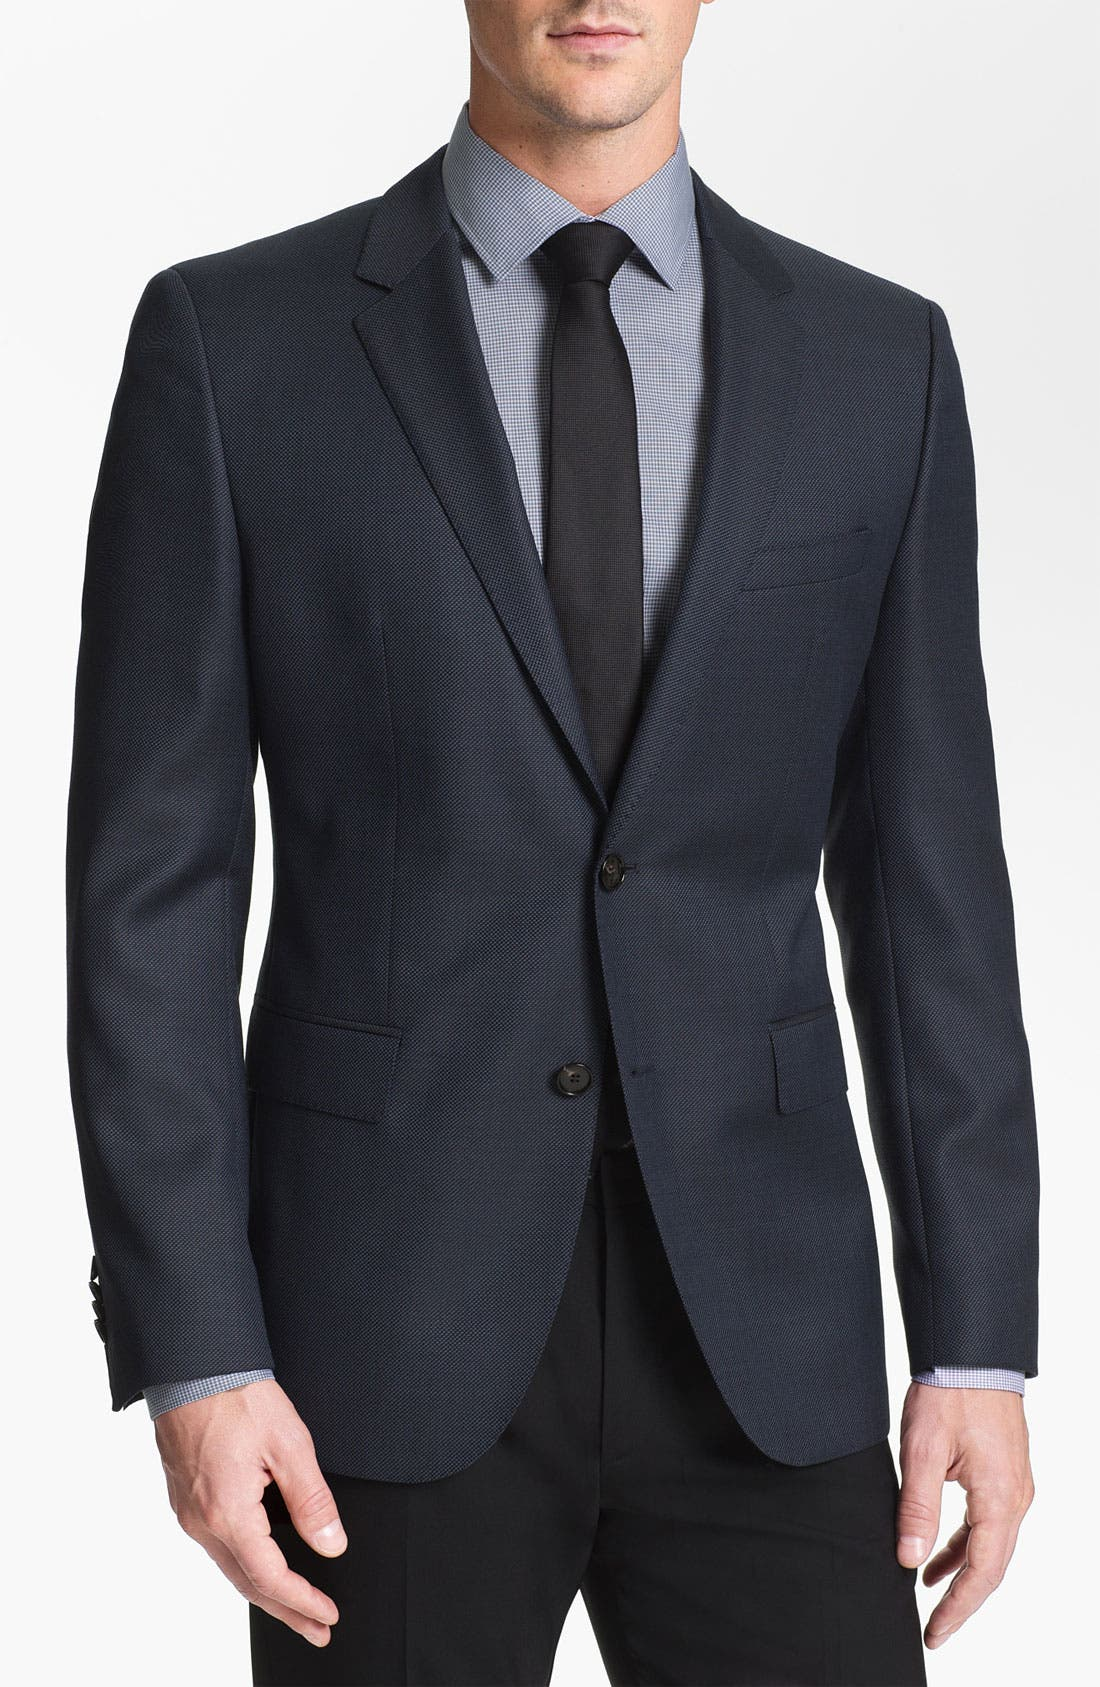 Alternate Image 1 Selected - BOSS HUGO BOSS 'James' Trim Fit Blazer